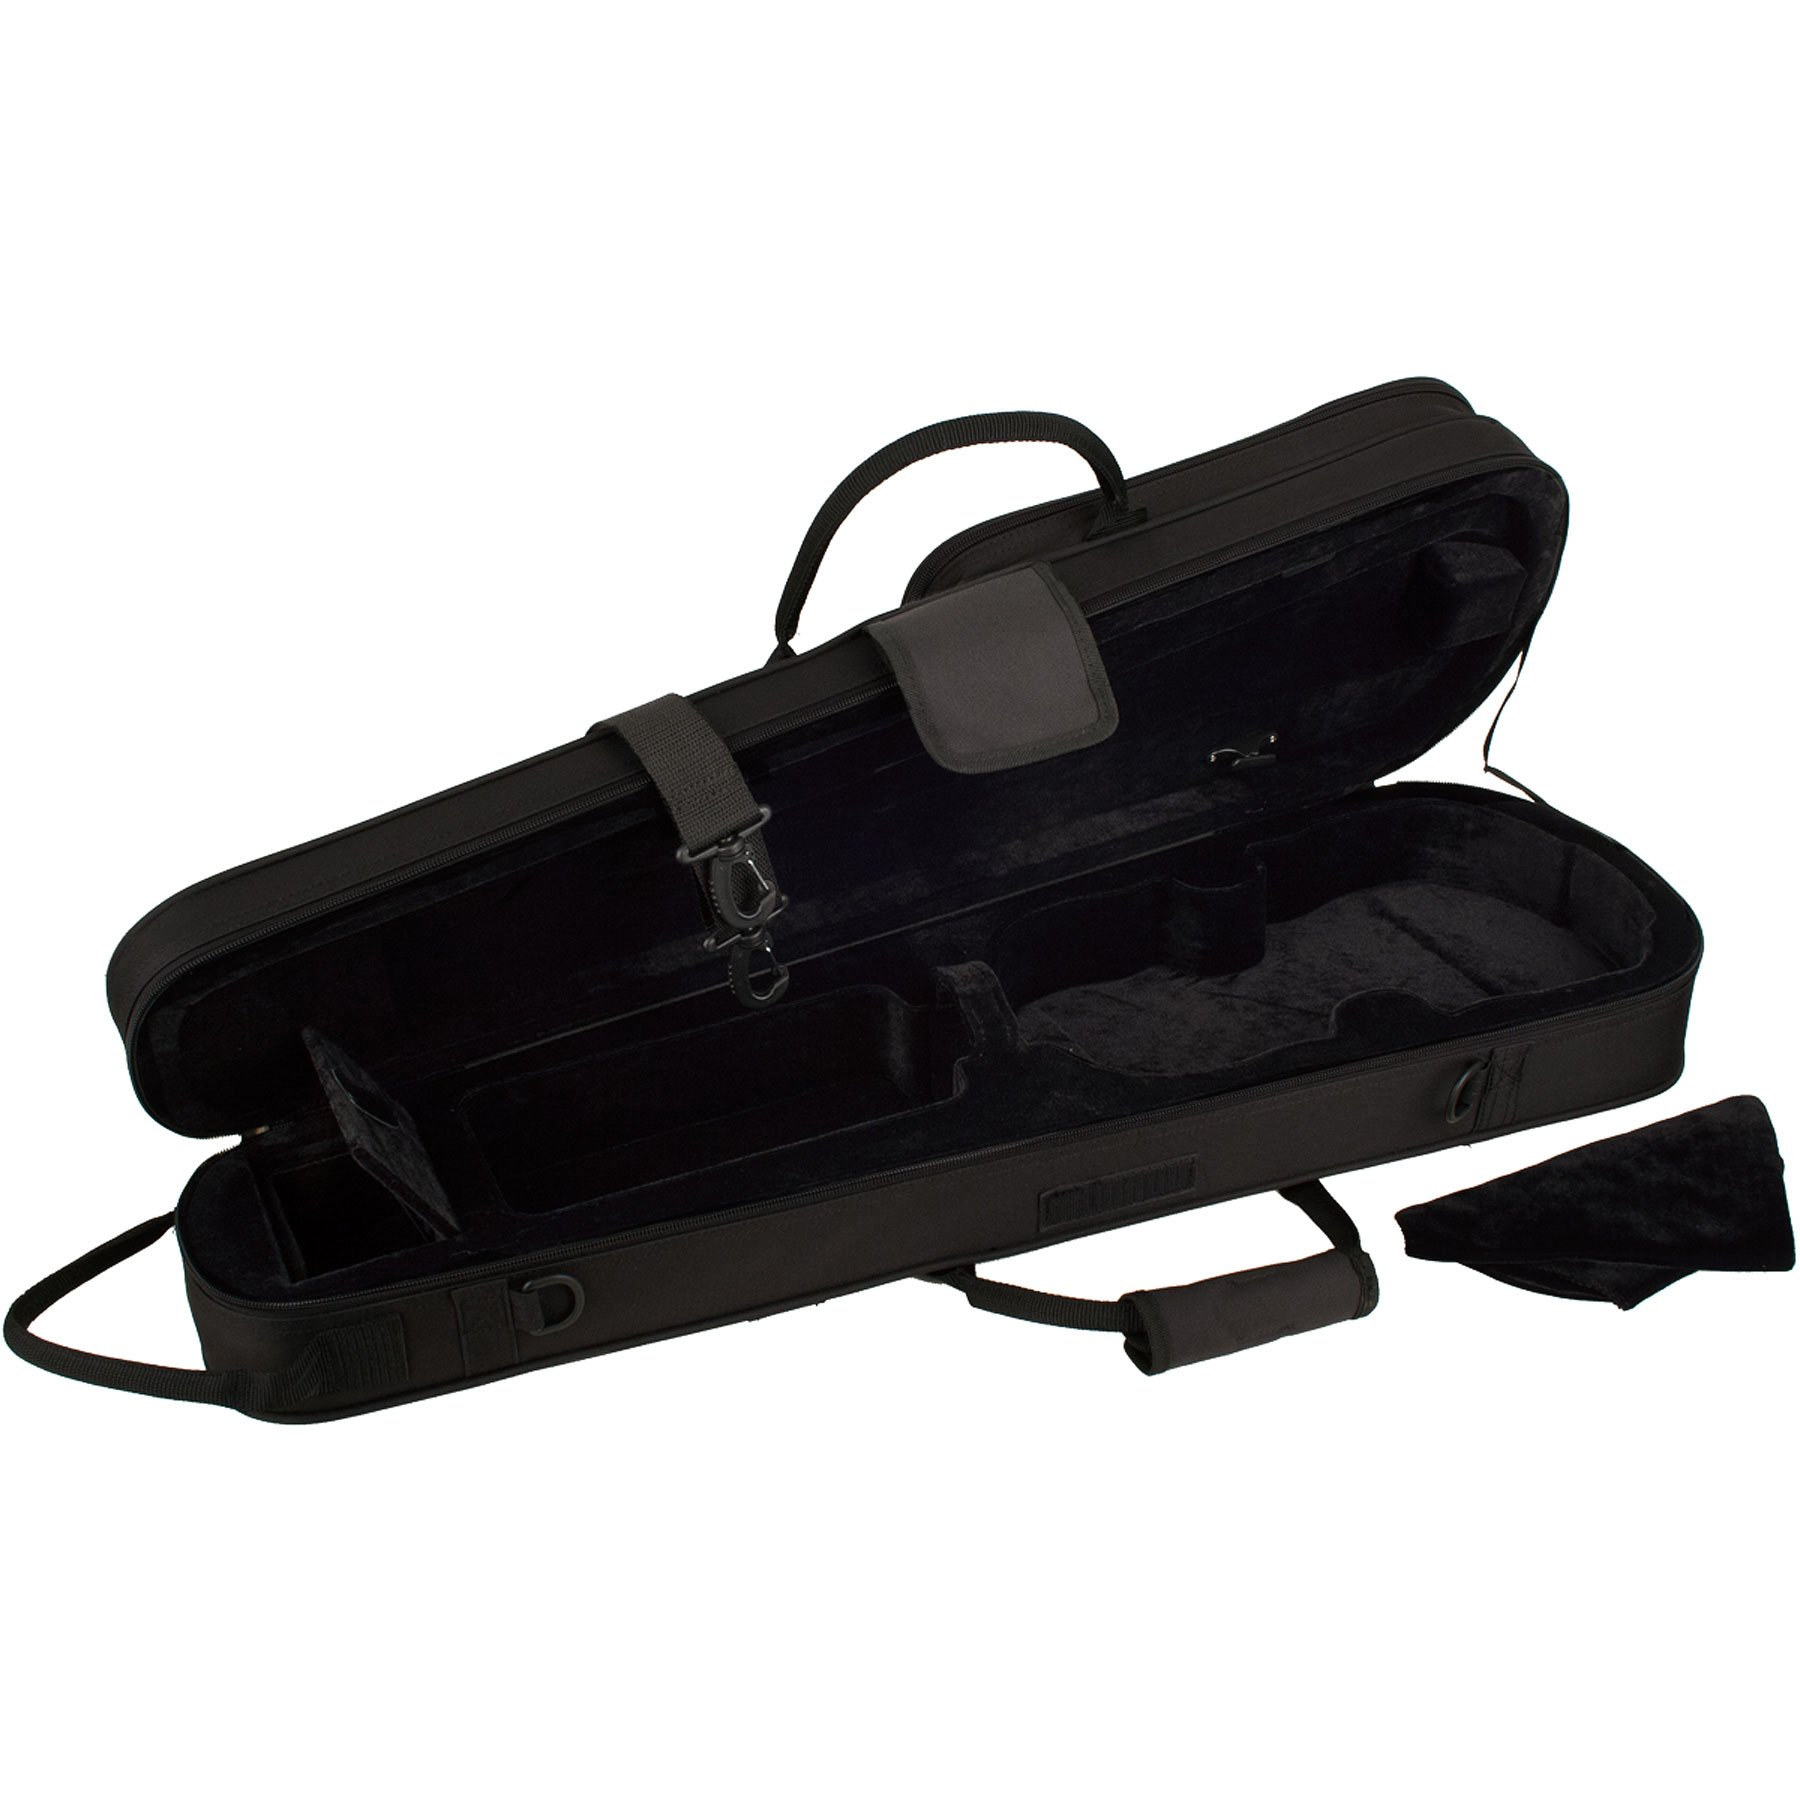 Protec MX044 4/4 Violin Shaped MAX Case, Black by ProTec (Image #3)